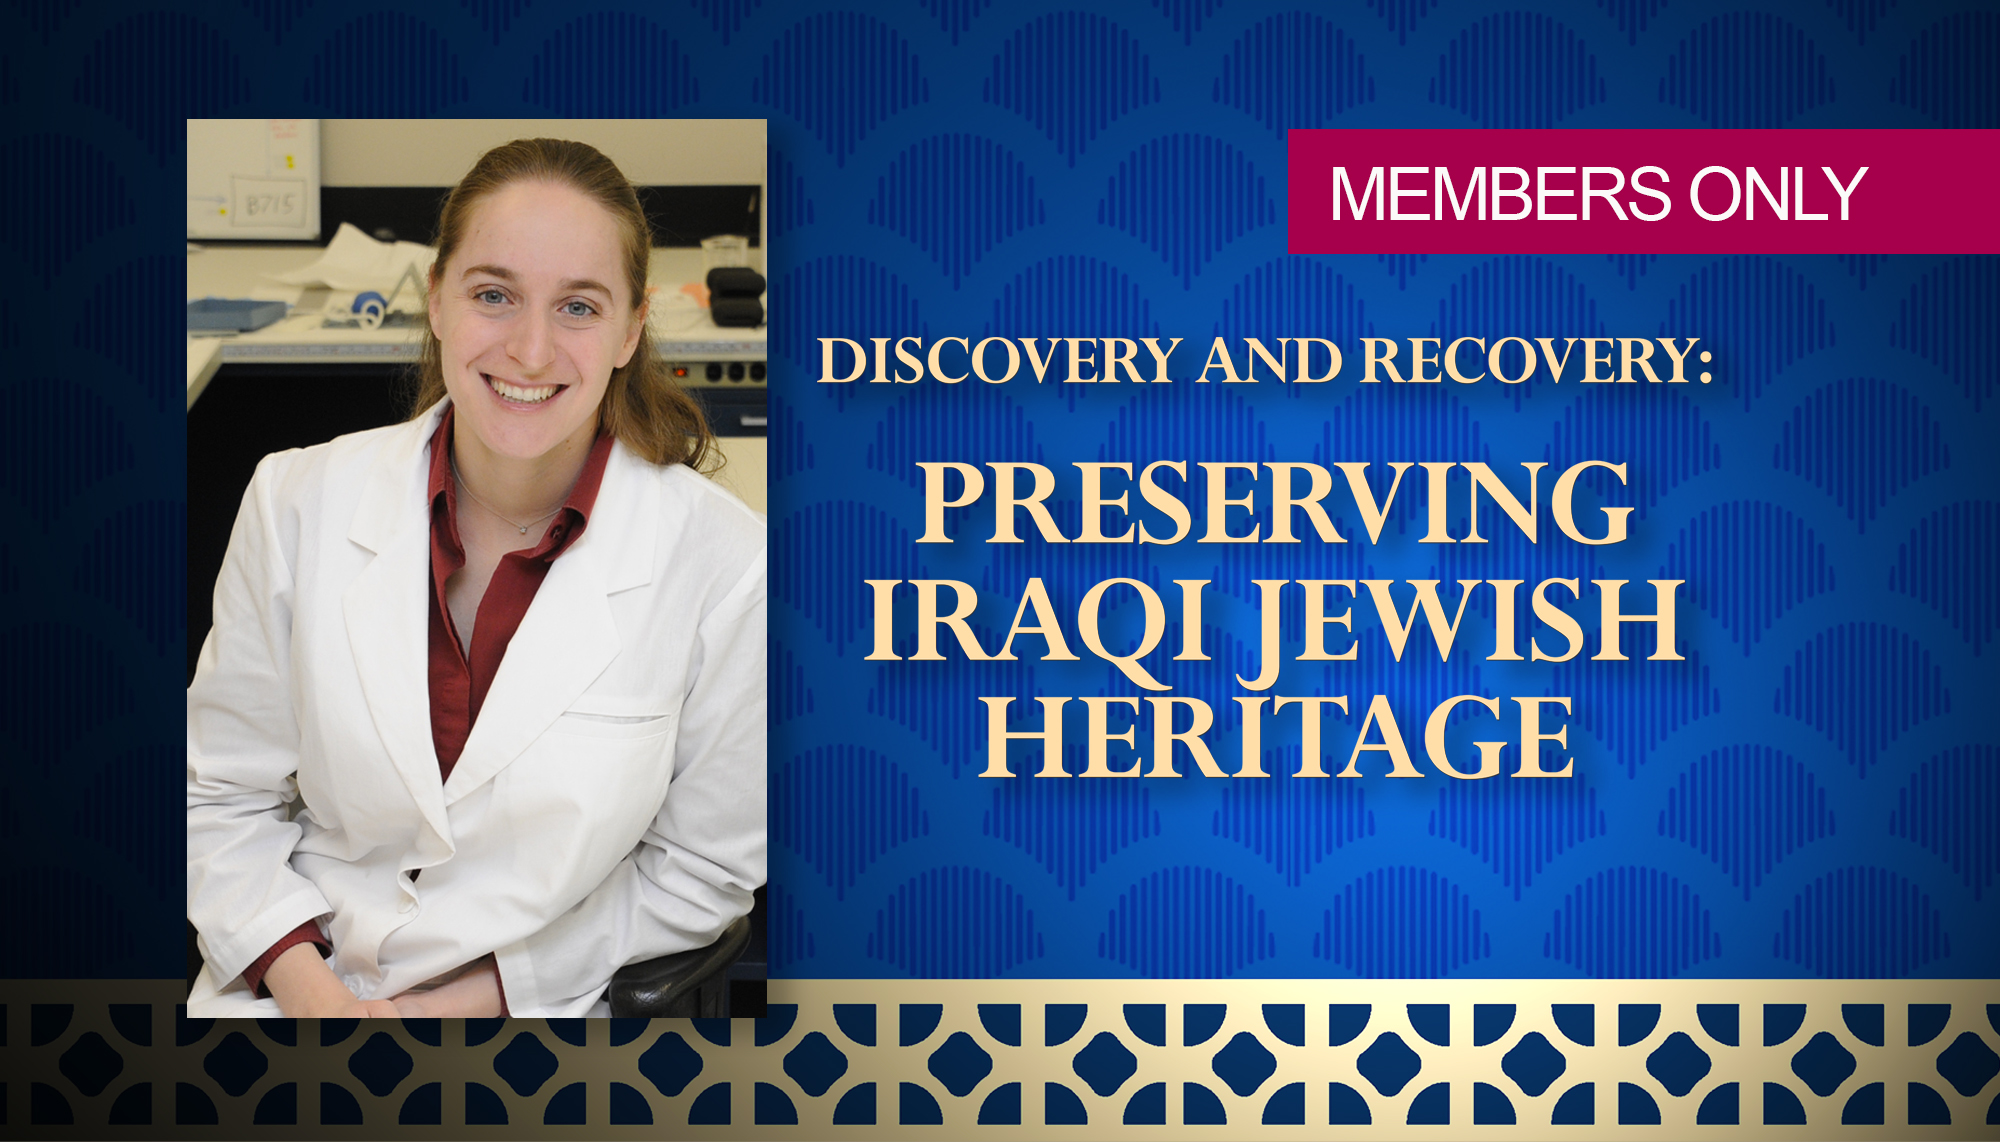 Conservator Talk on Preserving Iraqi Jewish Heritage